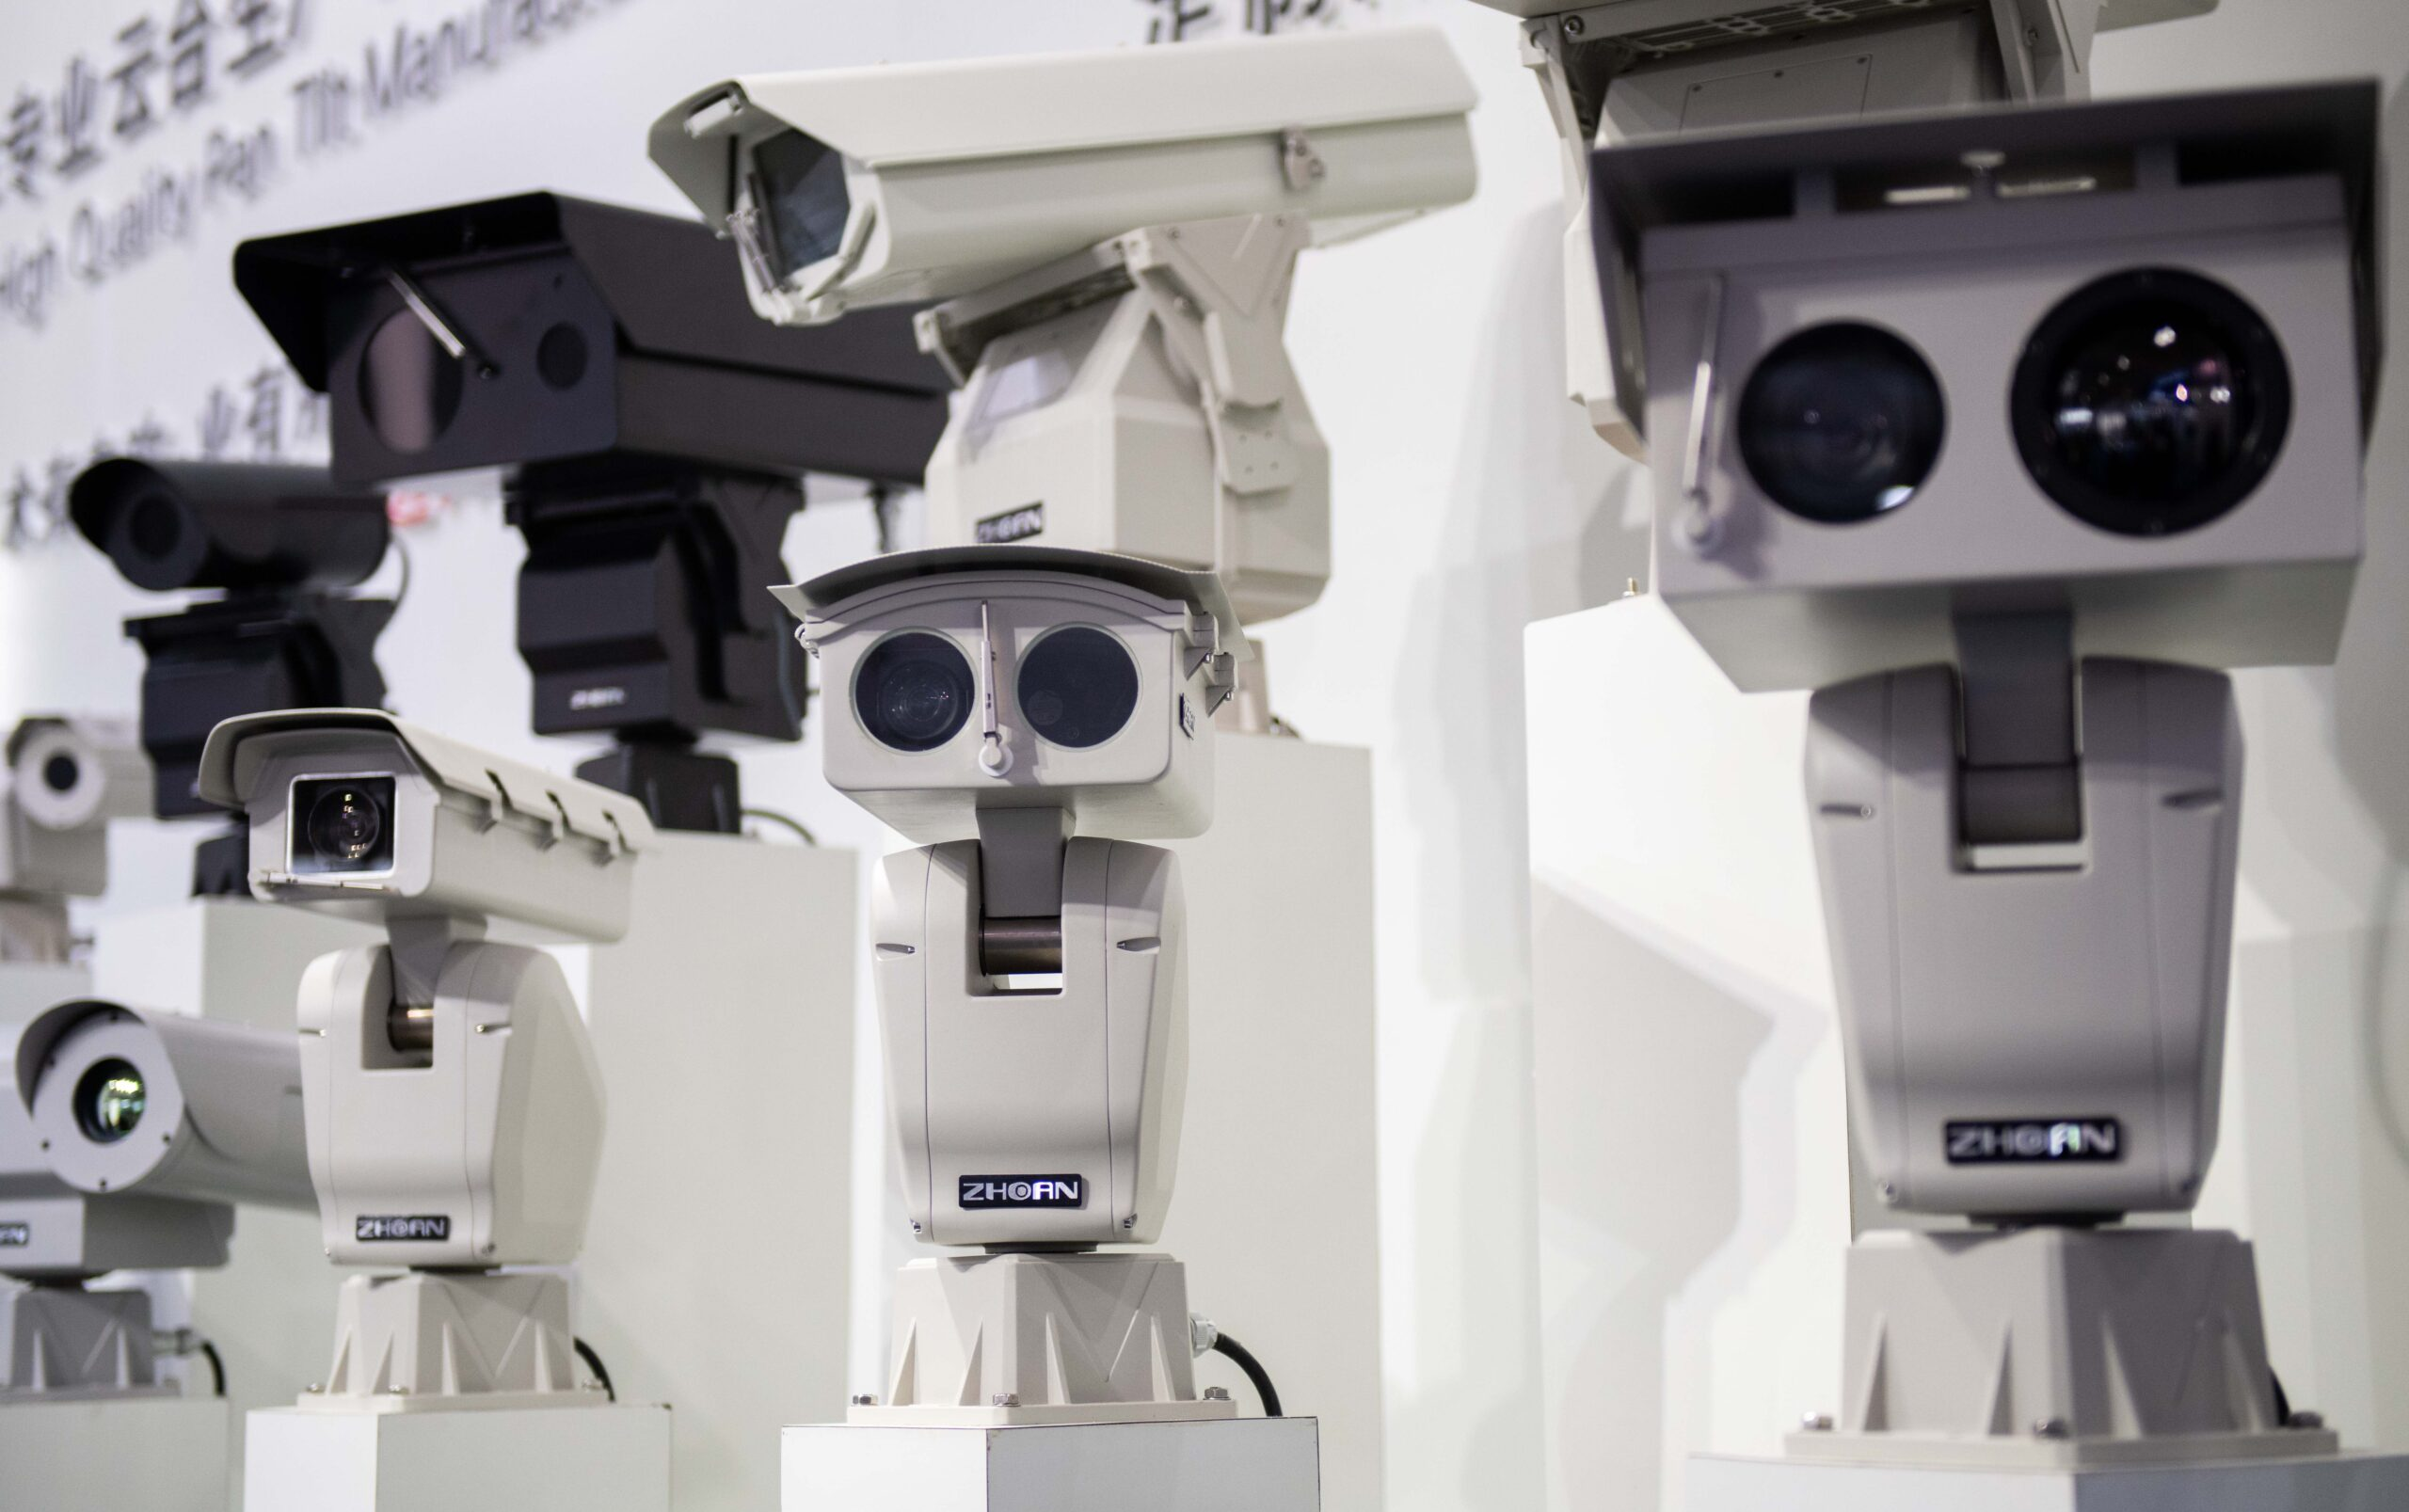 Ban dangerous facial recognition technology that amplifies racist policing